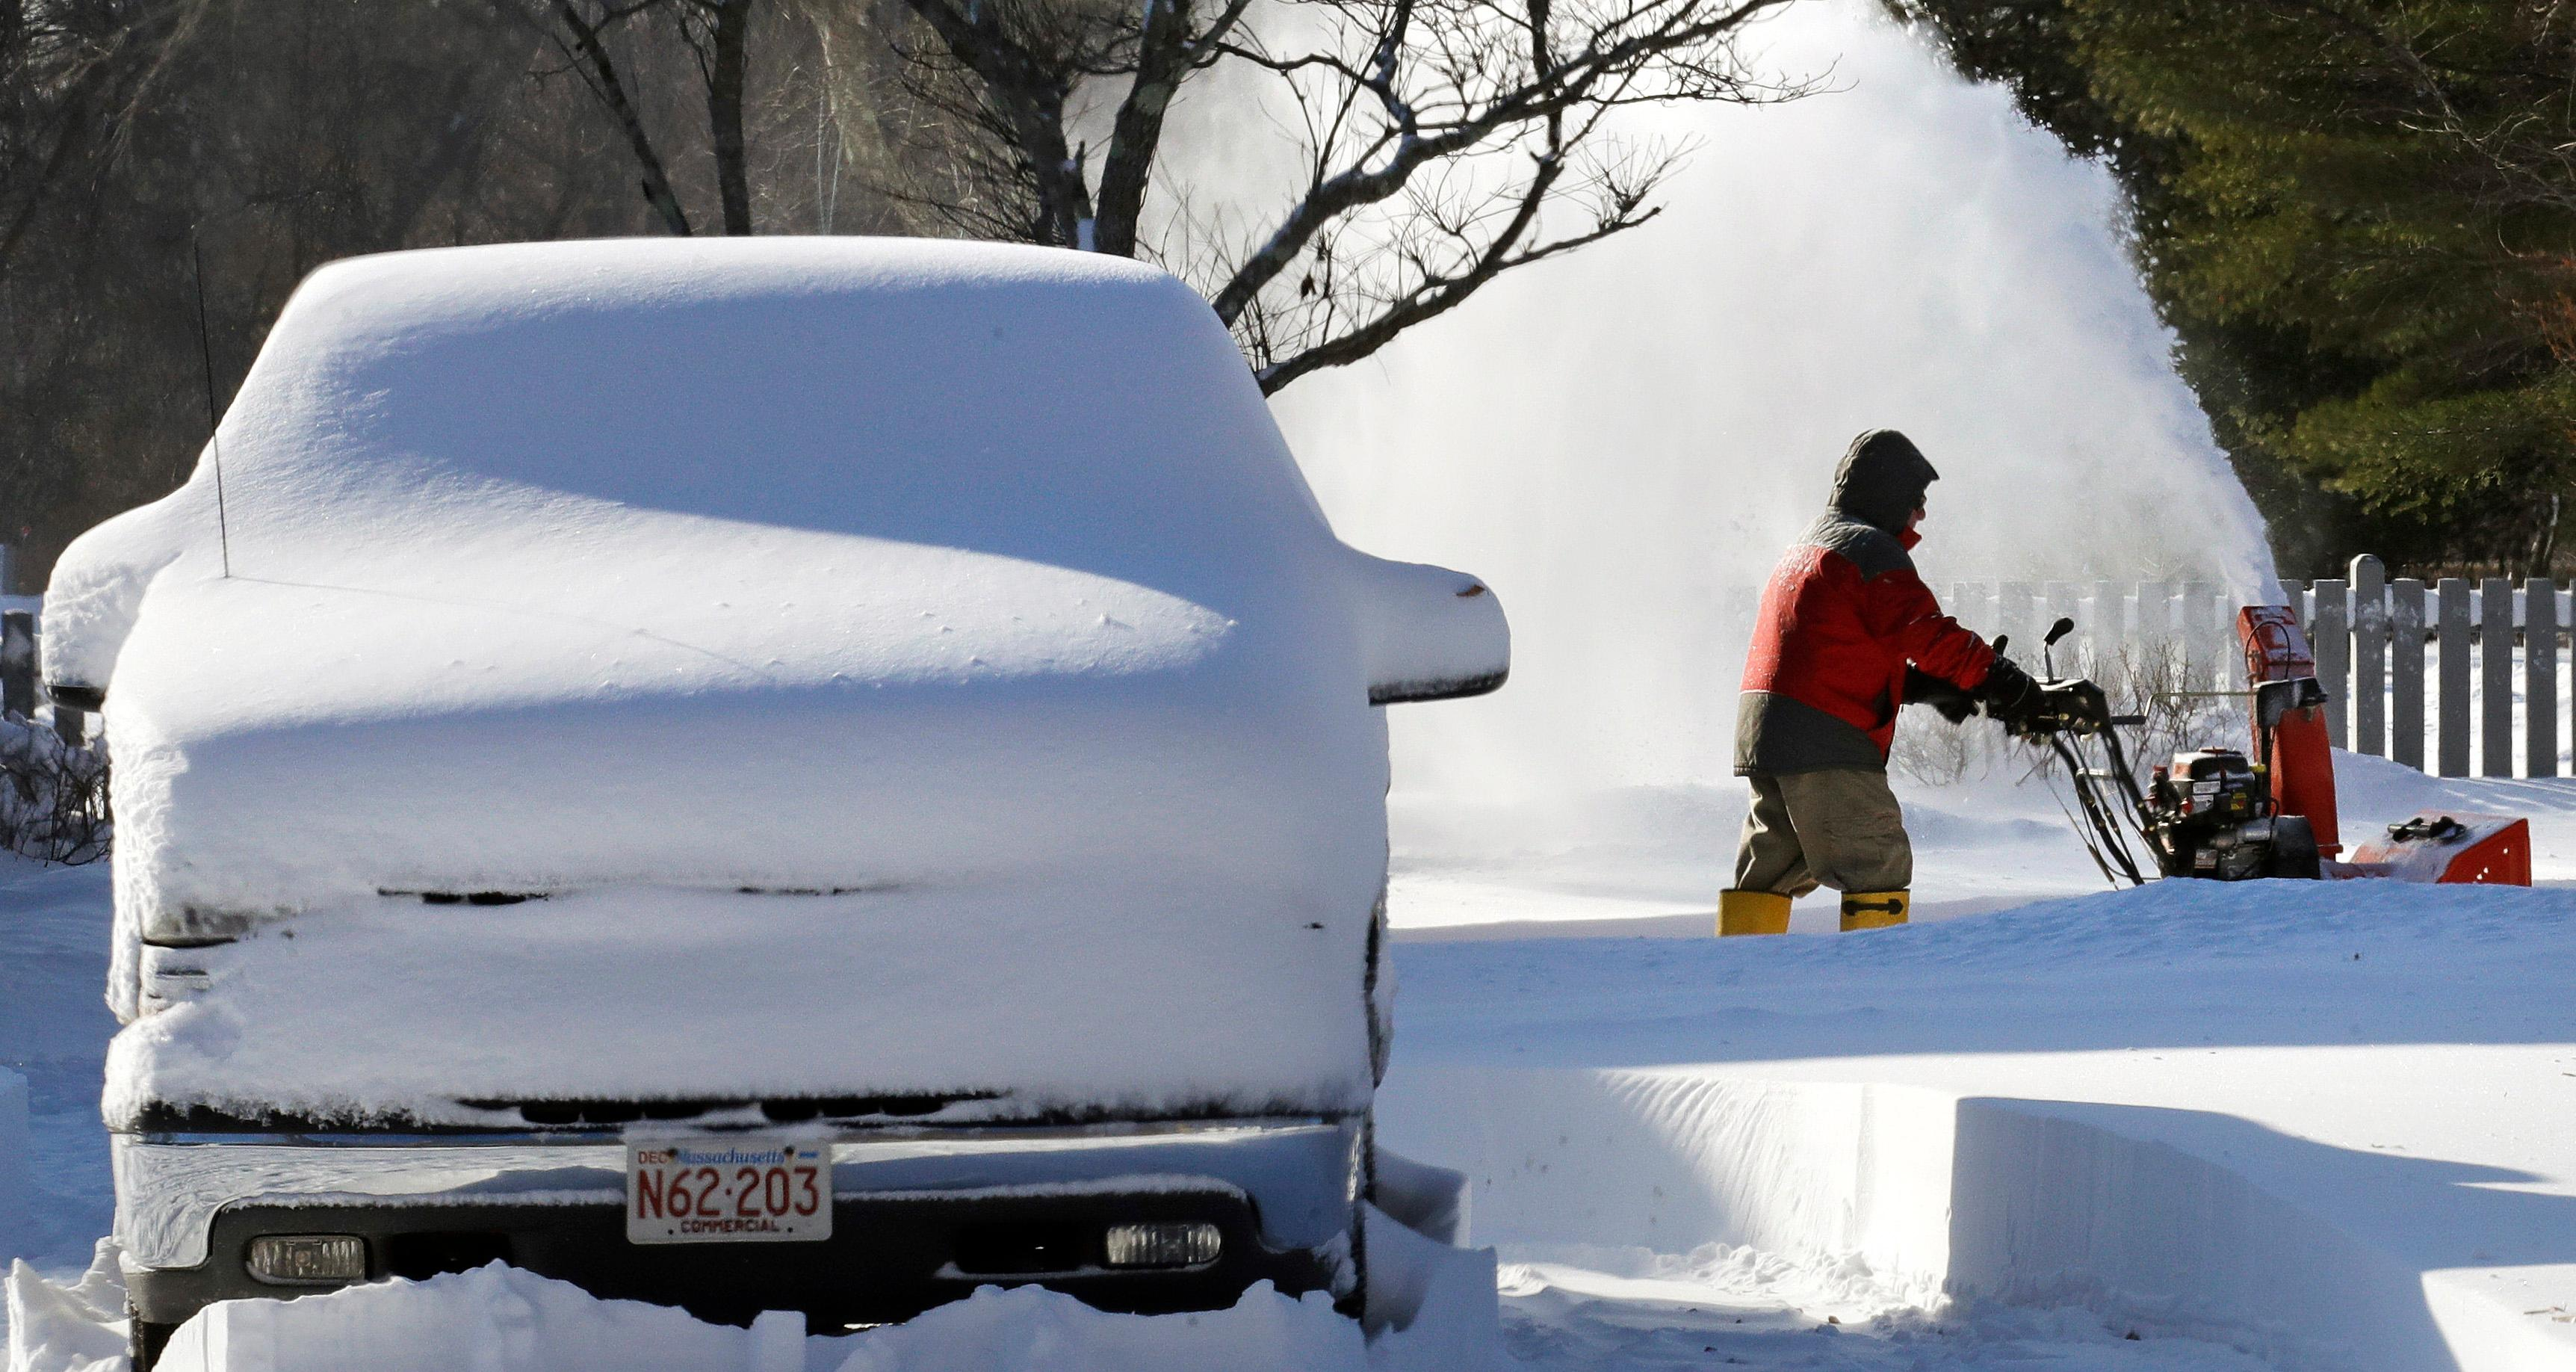 Eugene Mullen clears his driveway in Norwell, Mass., Friday, Jan. 5, 2018. Frigid temperatures, some that could feel as cold as minus 30 degrees, moved across the East Coast on Friday as the region attempted to clean up from a massive winter storm. (AP Photo/Charles Krupa)